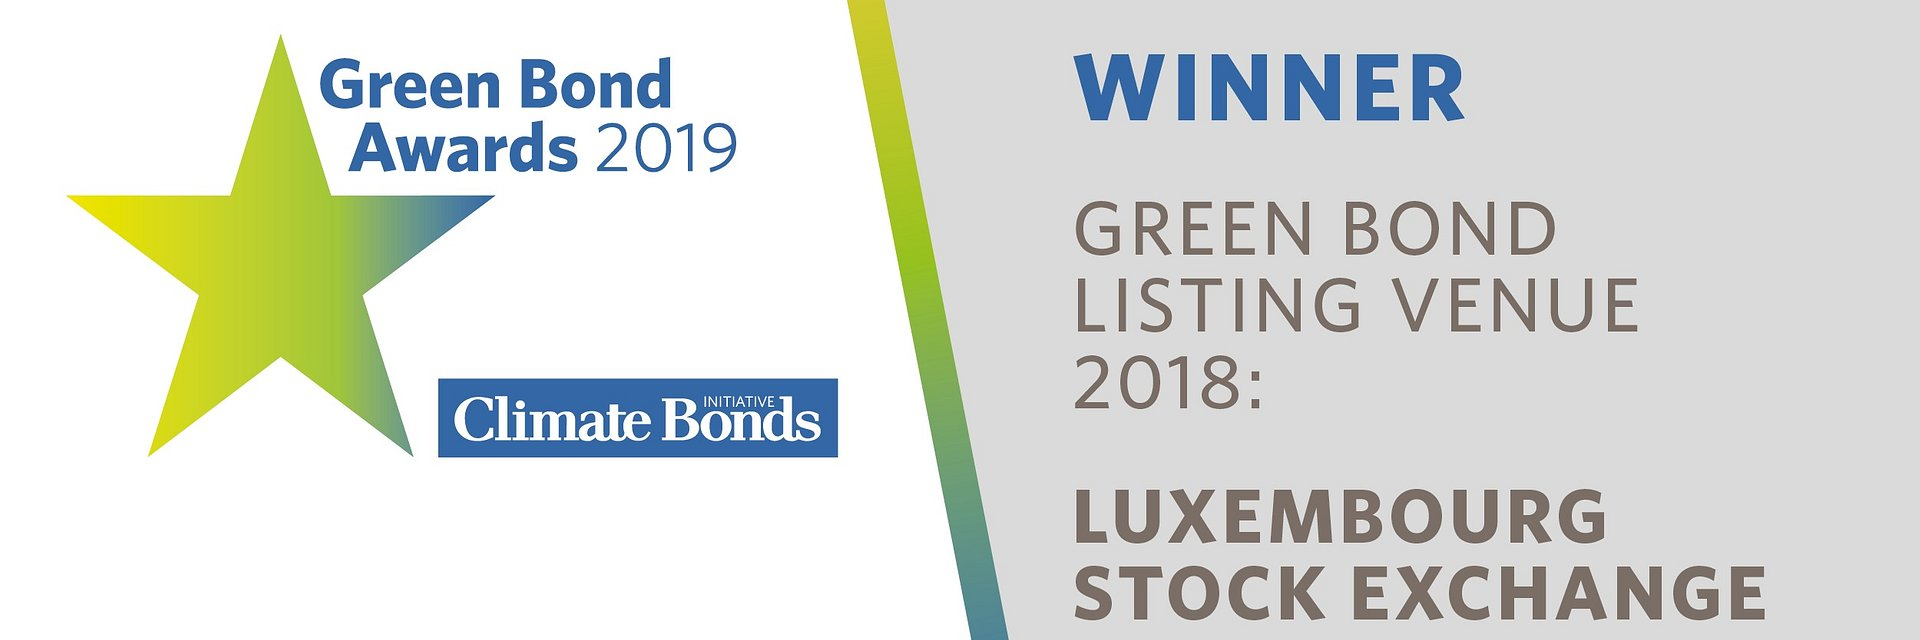 Luxembourg Stock Exchange wins 2019 Green Bond Pioneer Award